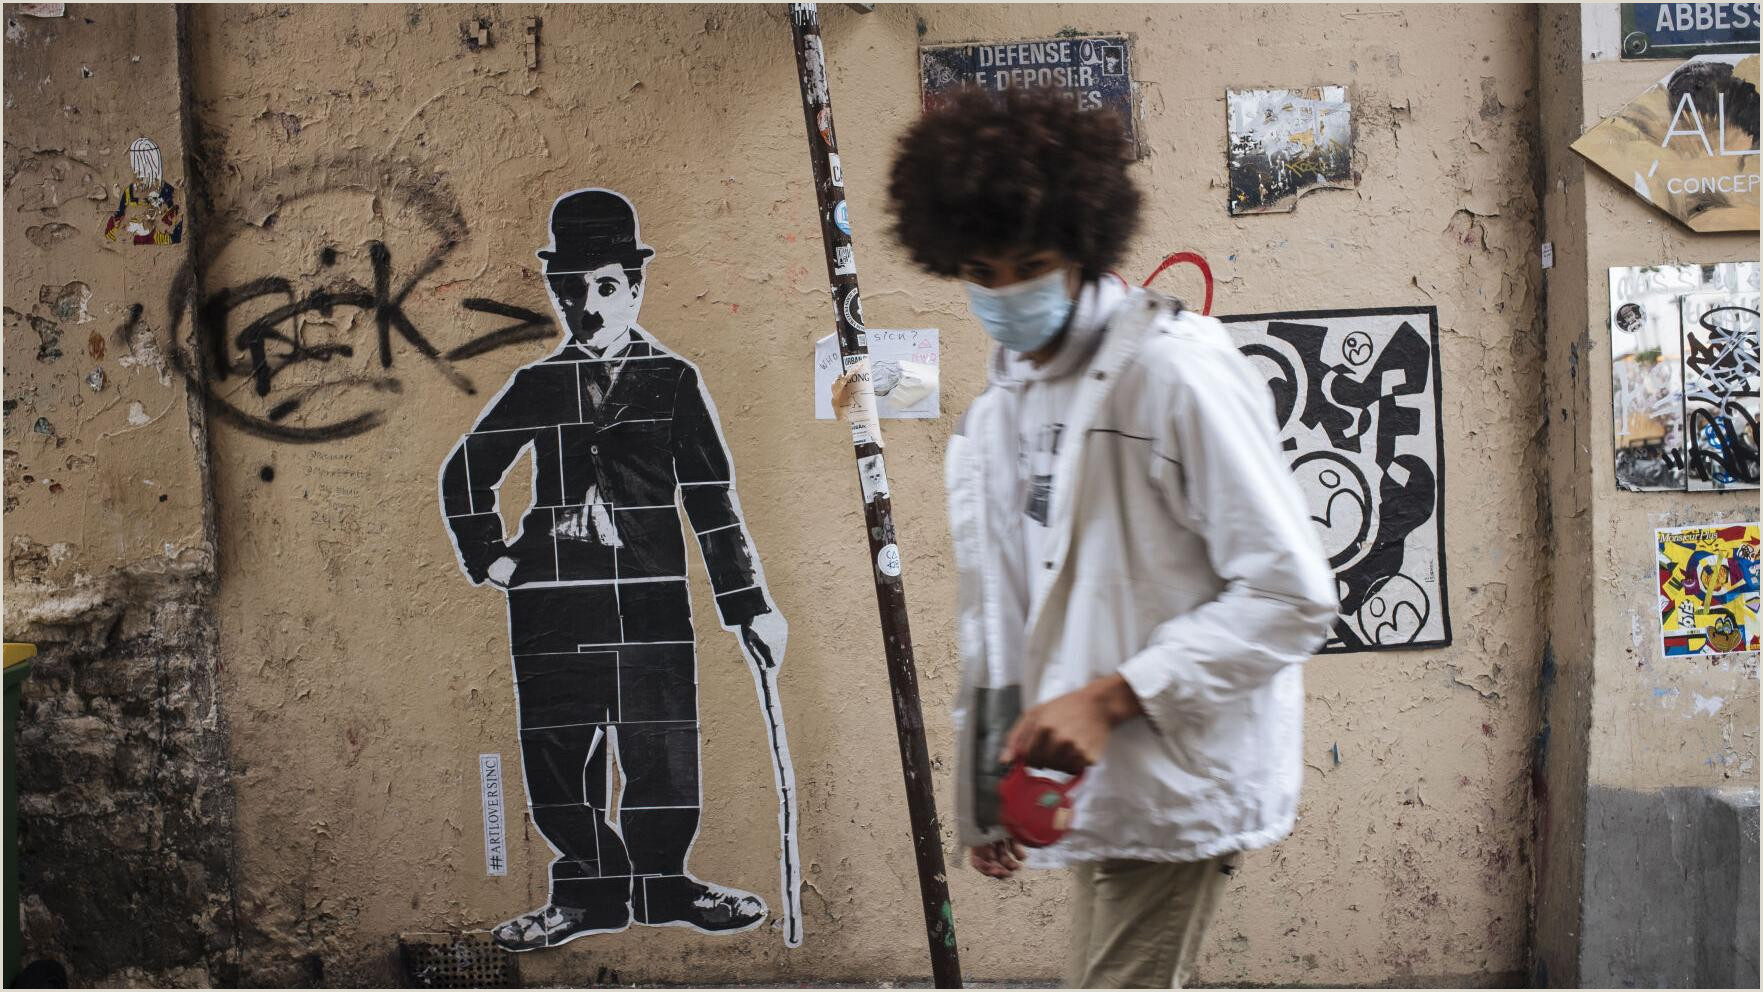 Painting Logos Business Cards The Latest Un Seeks $211m More To Help Syria With Pandemic